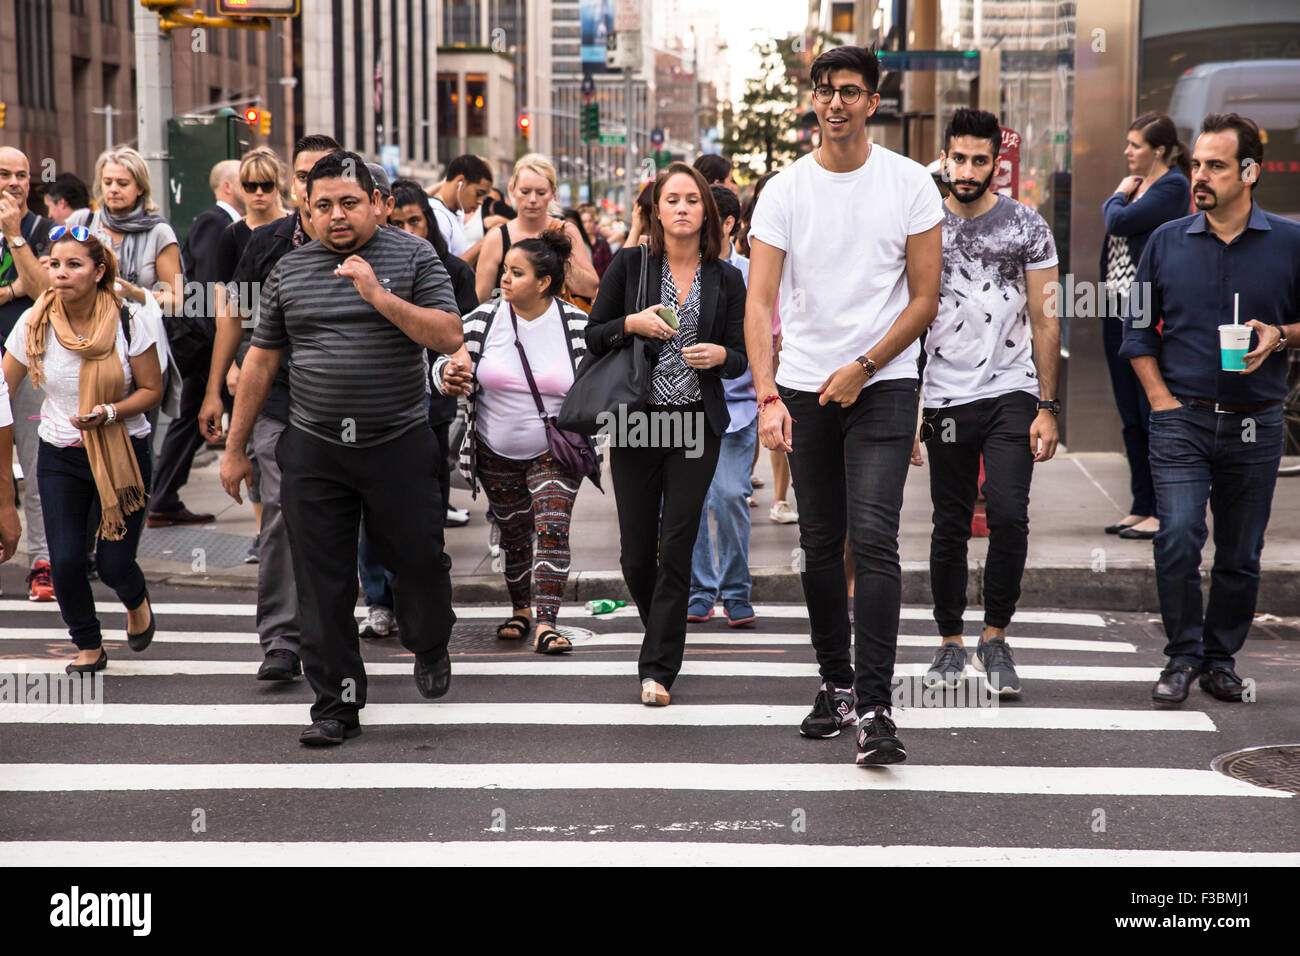 NEW YORK CITY - SEPTEMBER 14, 2015: Pictured here is a crosswalk in midtown Manhattan with a diversity of pedestrians - Stock Image